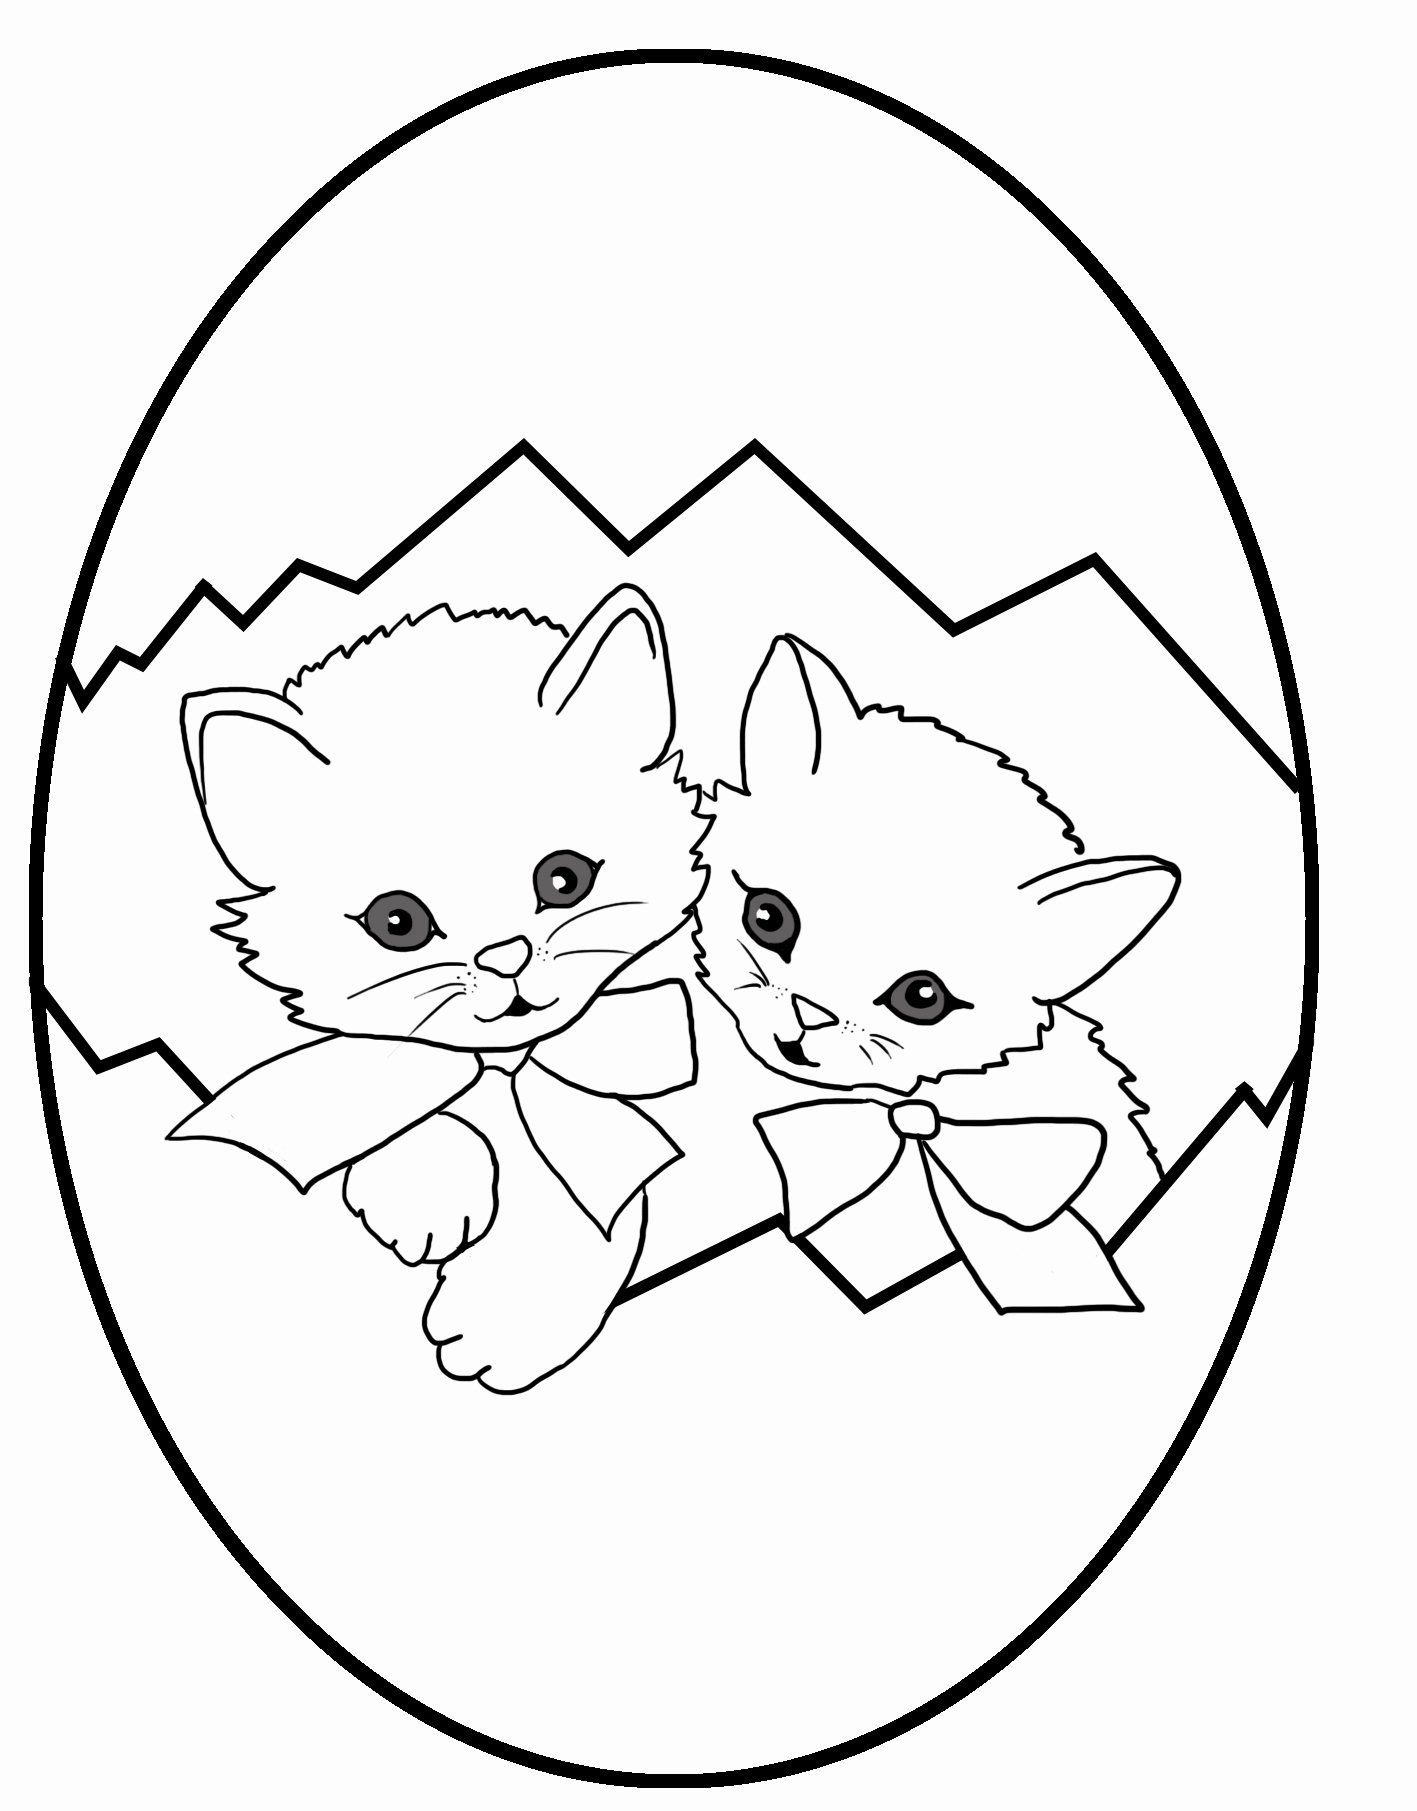 Easter Egg Coloring Pages Printable Unique Coloring Pages